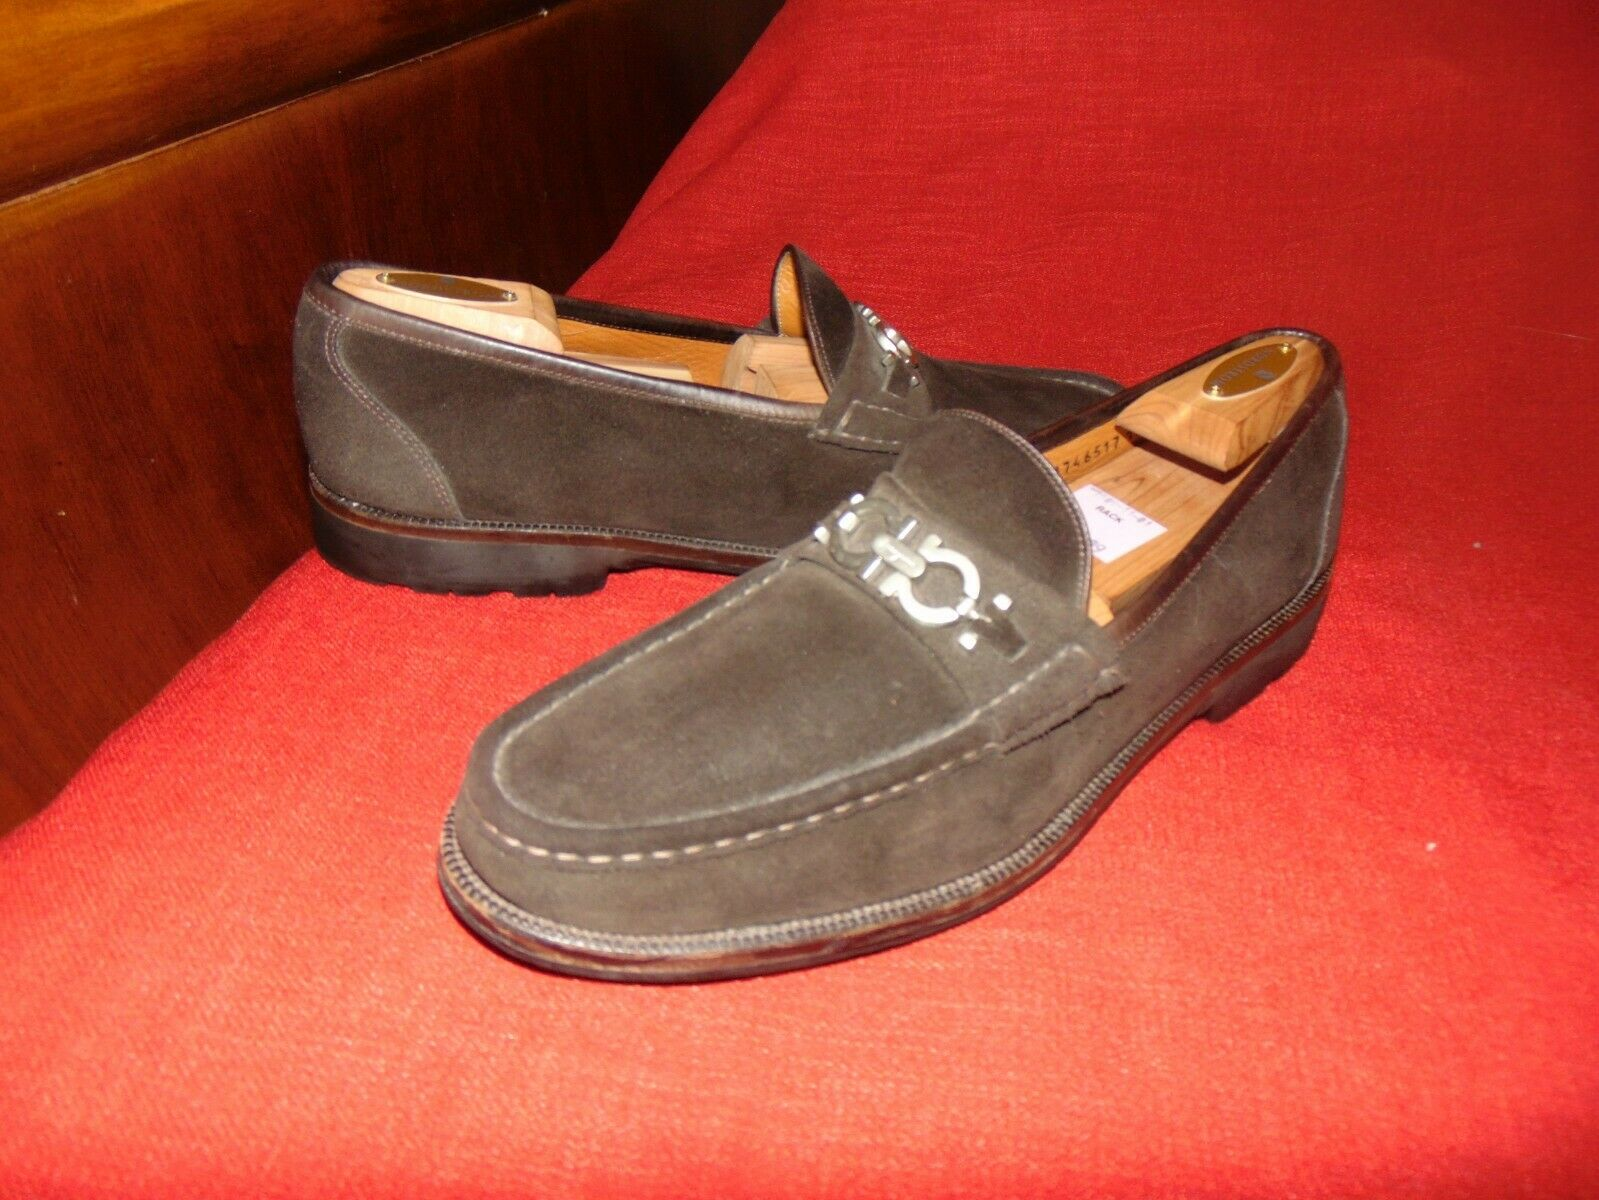 Classic Salvatore Ferragamo Brown Suede Calf Leather Diego Loafers shoes 12 D T